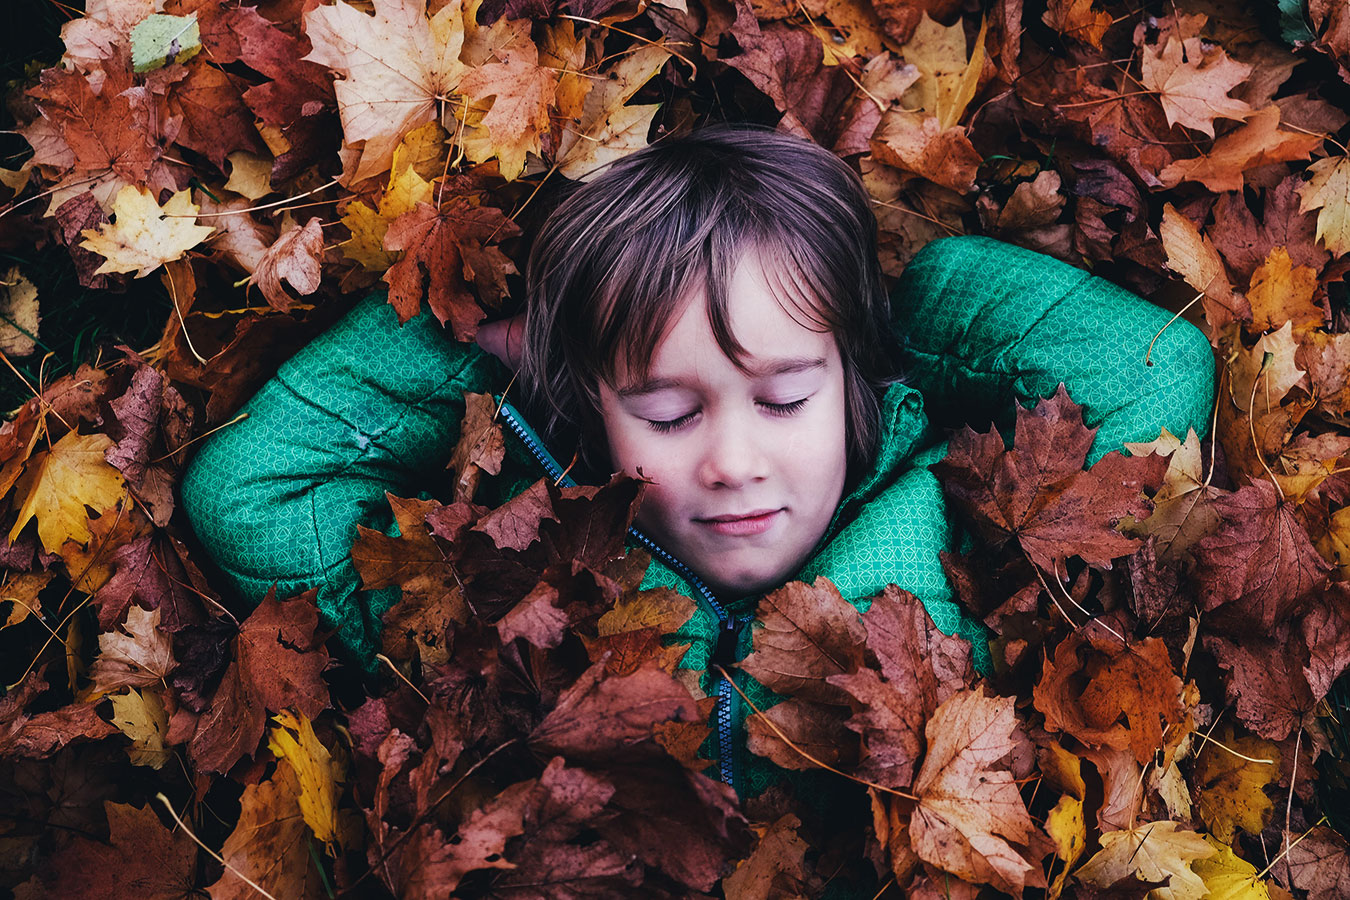 A boy laying in dried leaves.